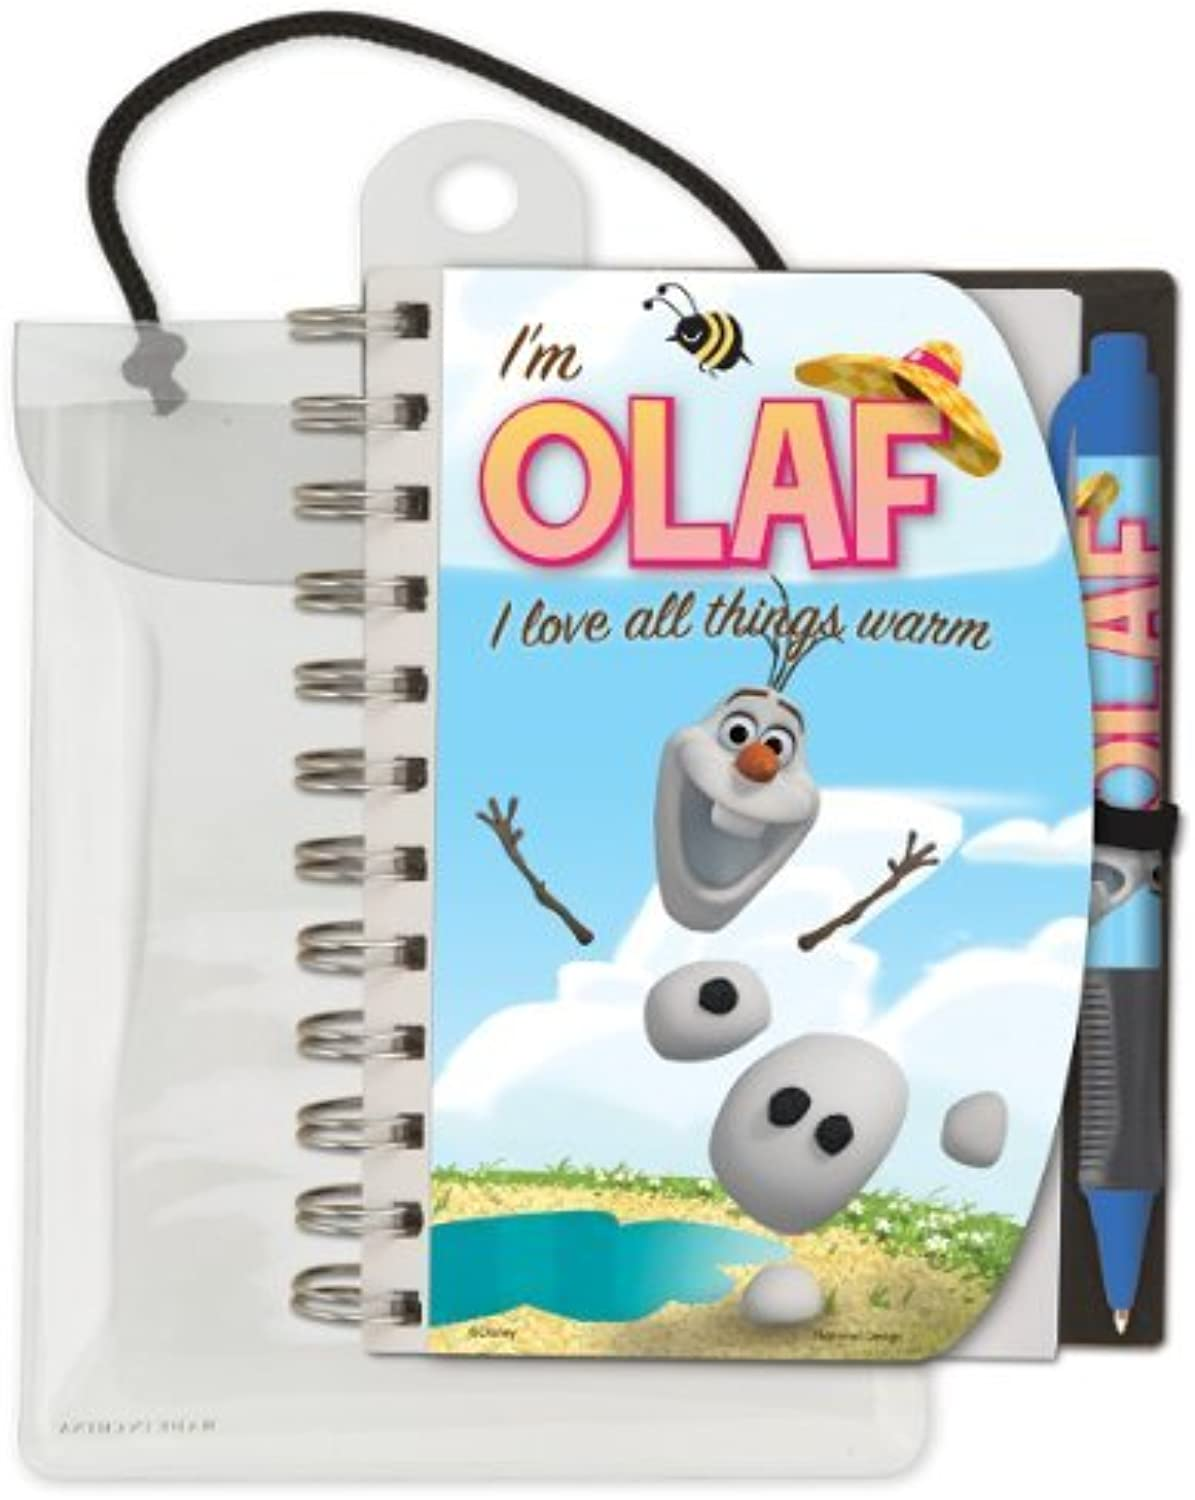 National Design Disney Frozen Olaf Deluxe Hardcover 4 x 6 Notebook and Pen Set by National Design